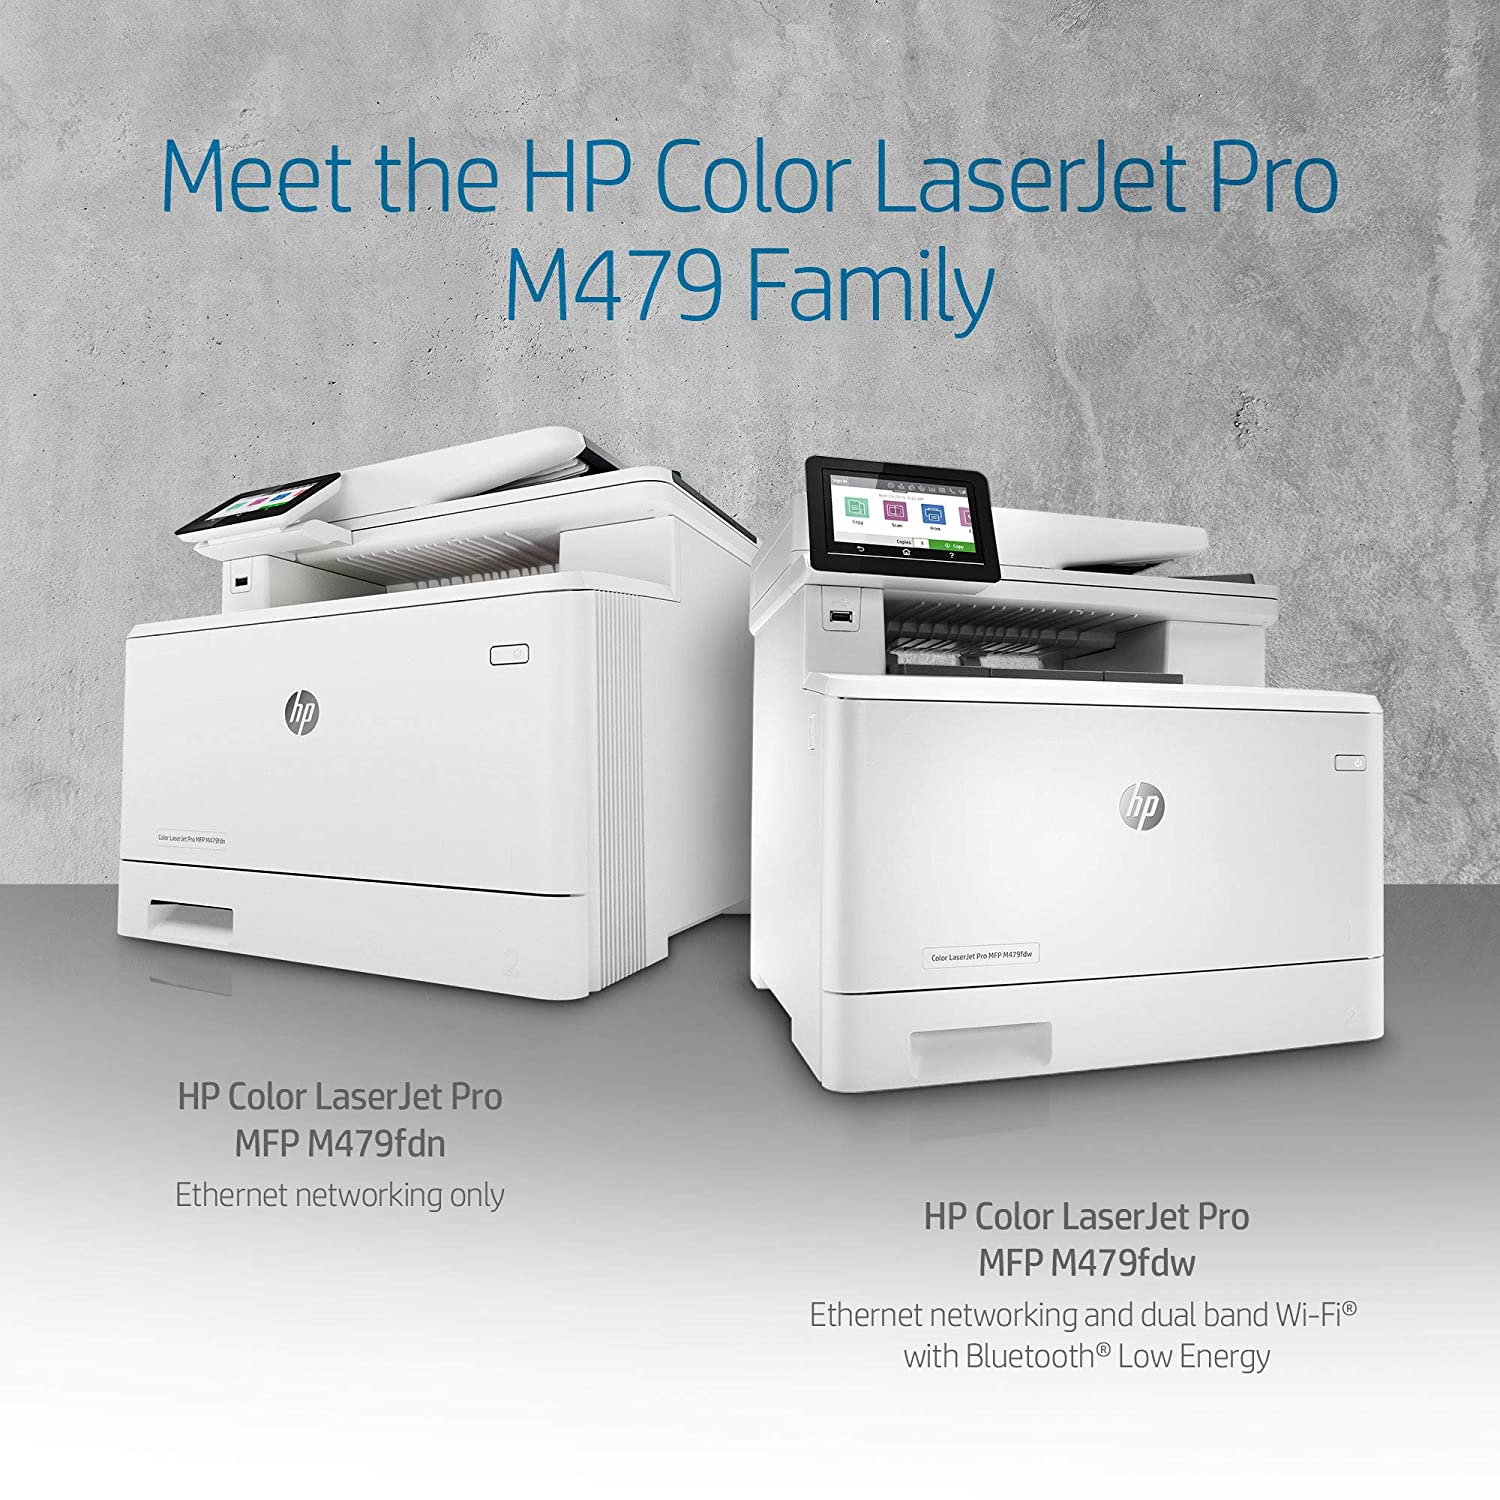 HP Color Laserjet Pro Multifunction M479fdw Wireless Laser Printer (W1A80A) with Standard Yield Black Toner Cartridge